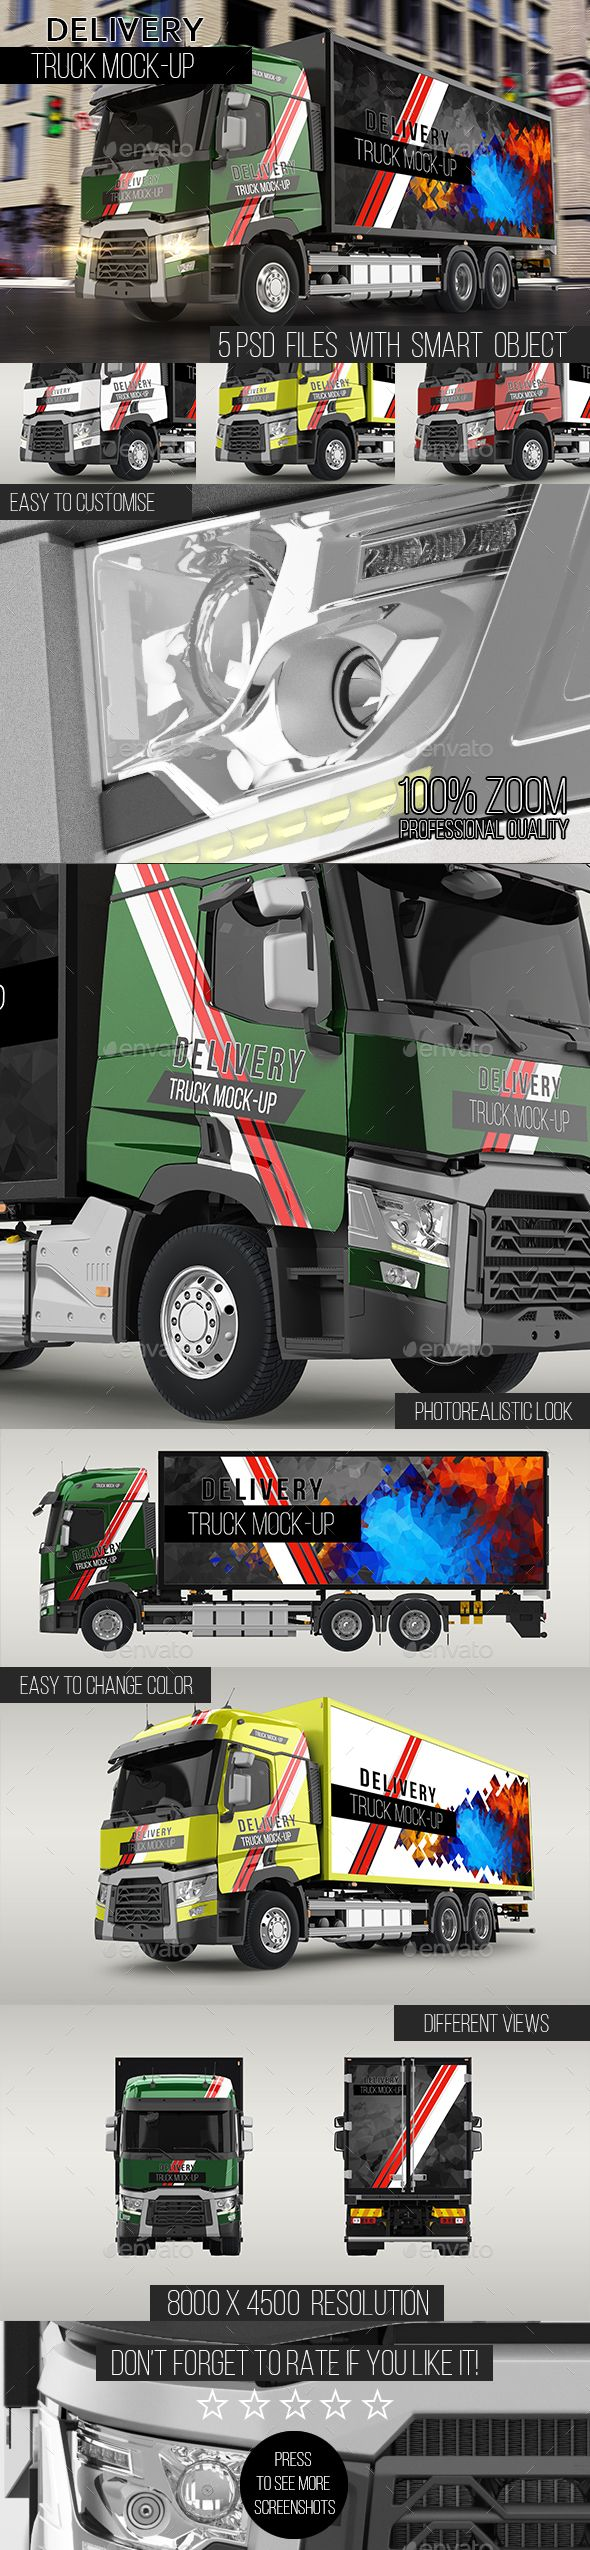 Delivery Truck #Mock-Up - Vehicle Wraps Print Download here: https://graphicriver.net/item/delivery-truck-mockup/19613019?ref=alena994